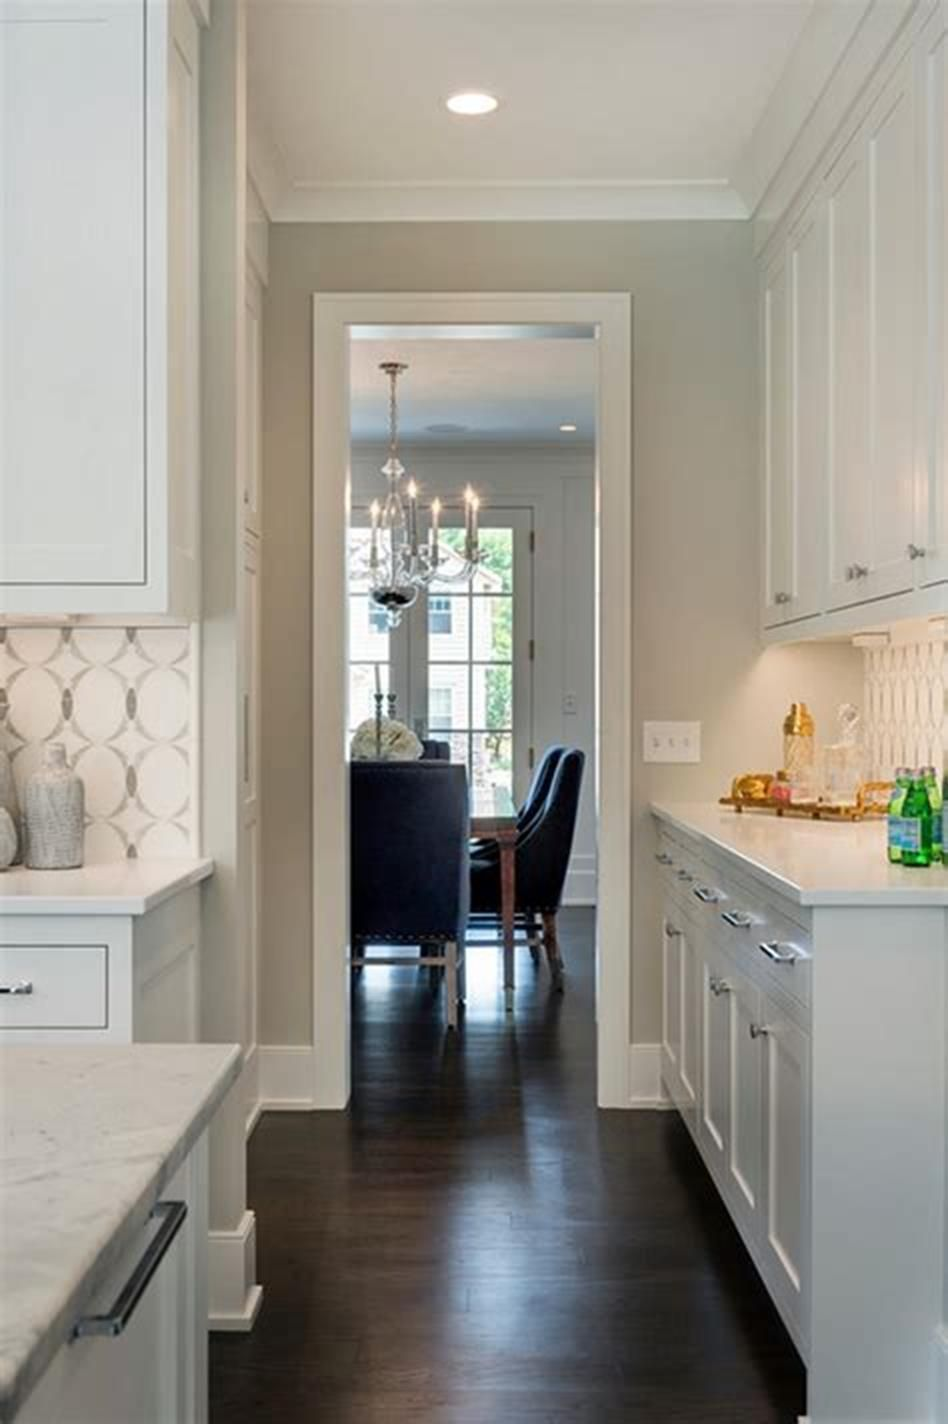 46 most popular kitchen color schemes trends 2019 20 in on wall paint colors id=18310